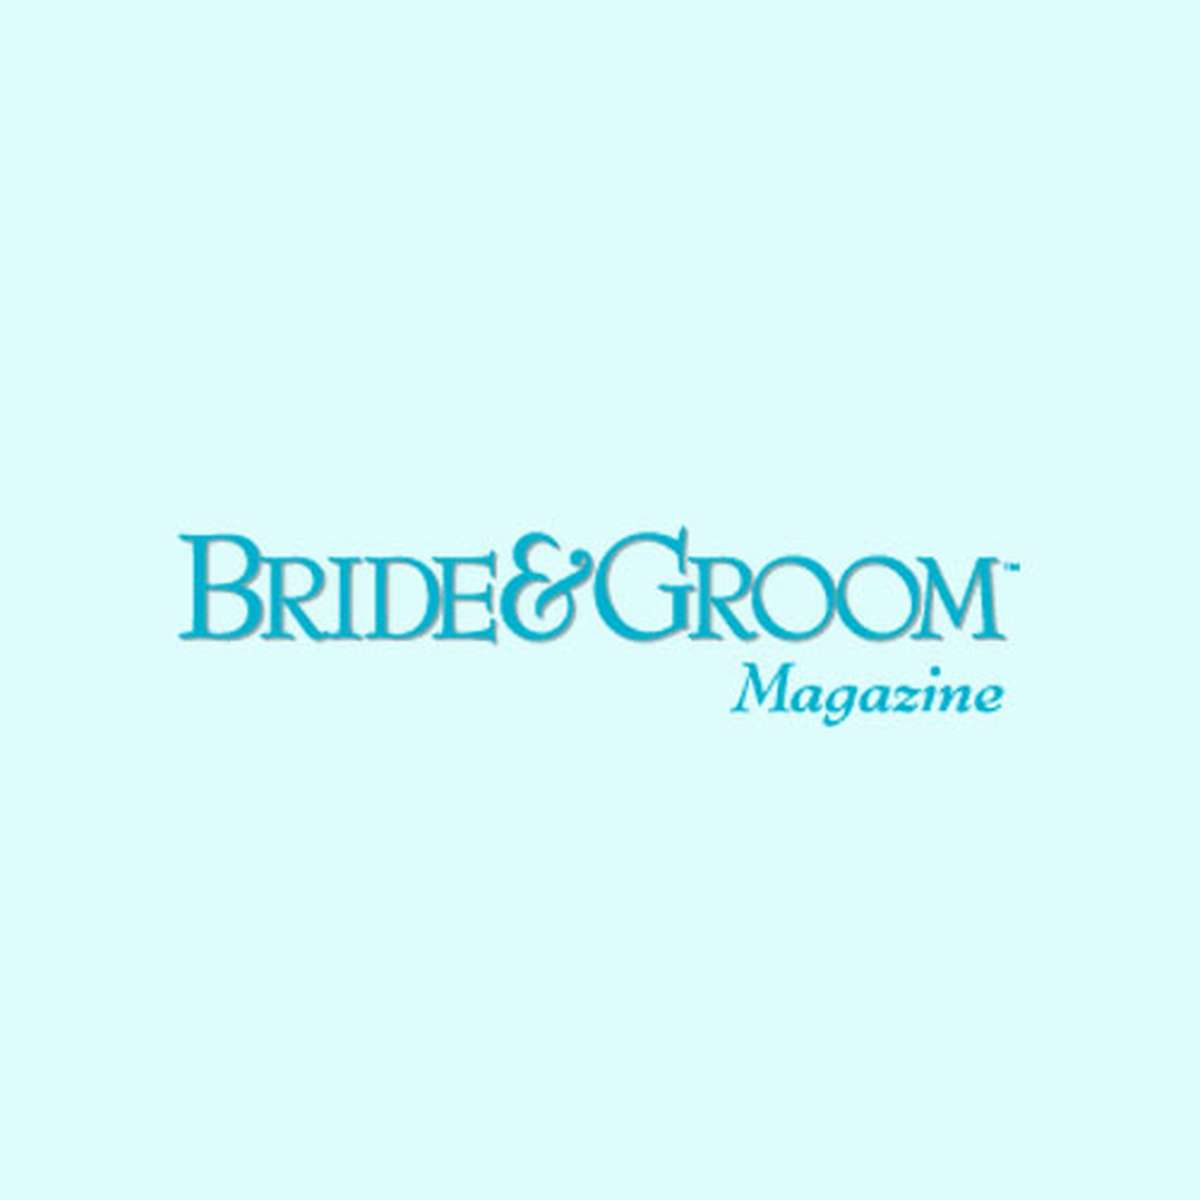 Bride & Groom Magazine Press about personalized wedding supplies from for your party